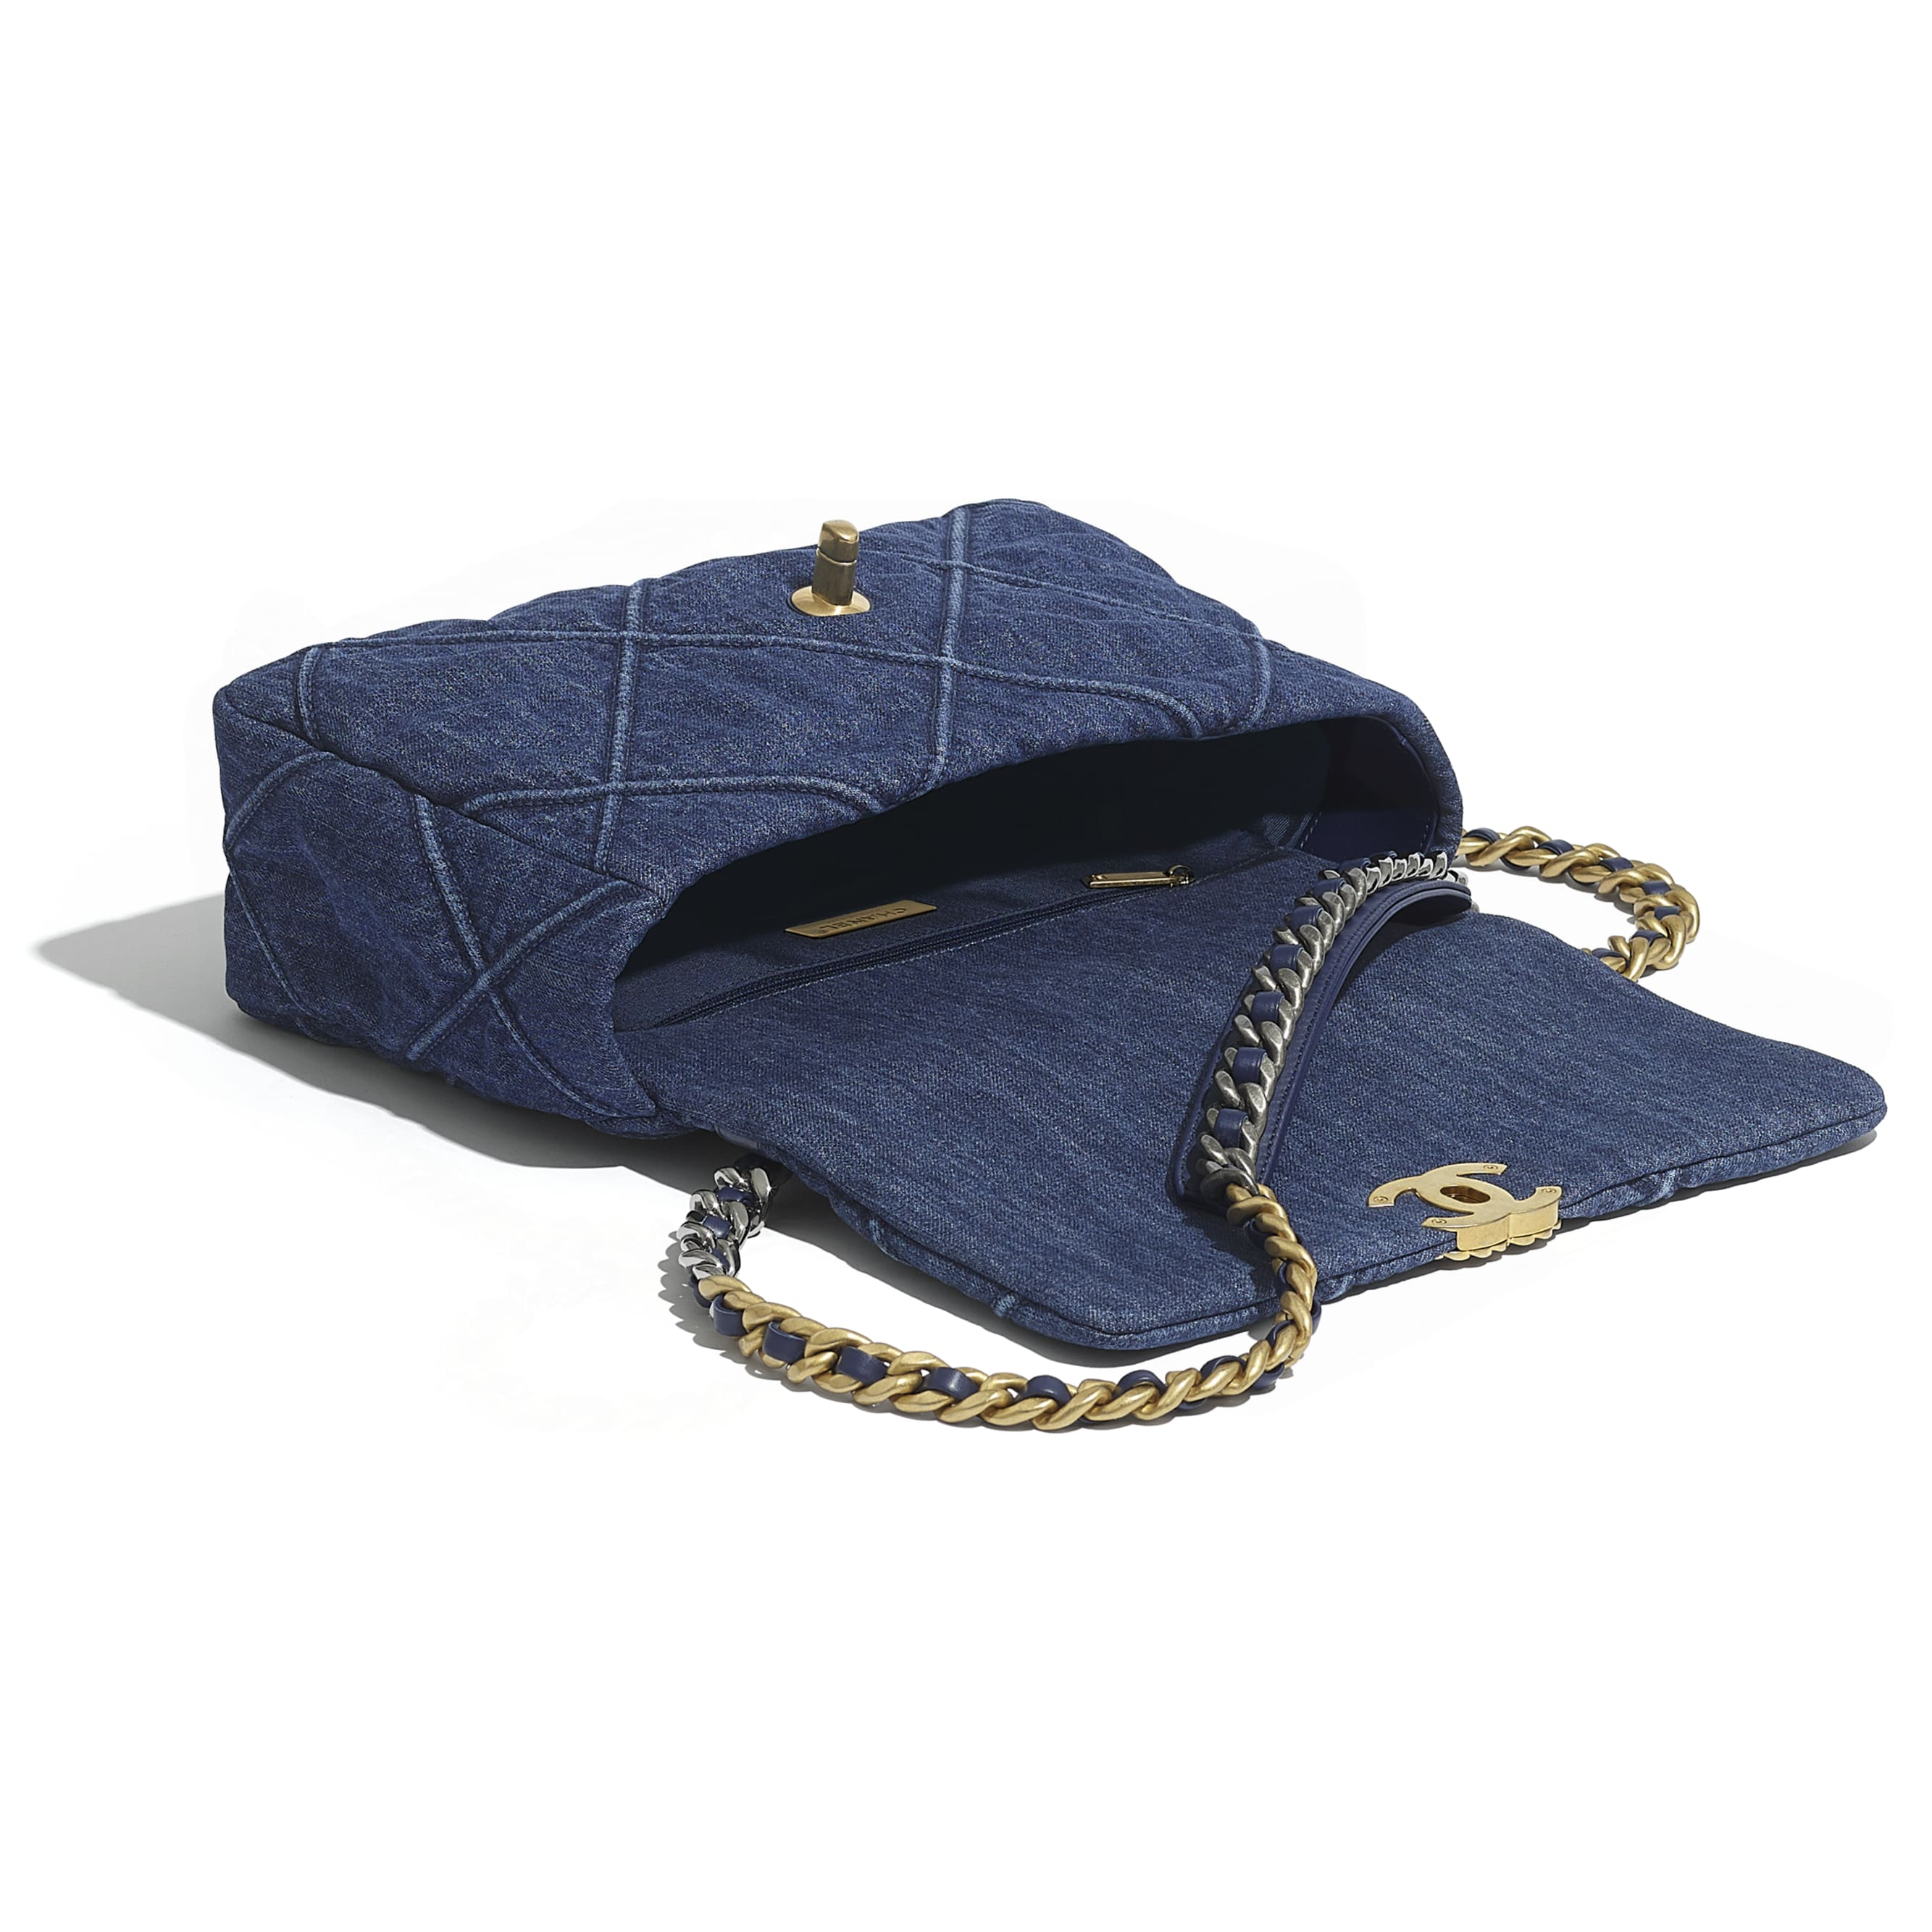 CHANEL 19 Large Flap Bag - Blue - Denim, Gold-Tone, Silver-Tone & Ruthenium-Finish Metal - CHANEL - Other view - see standard sized version